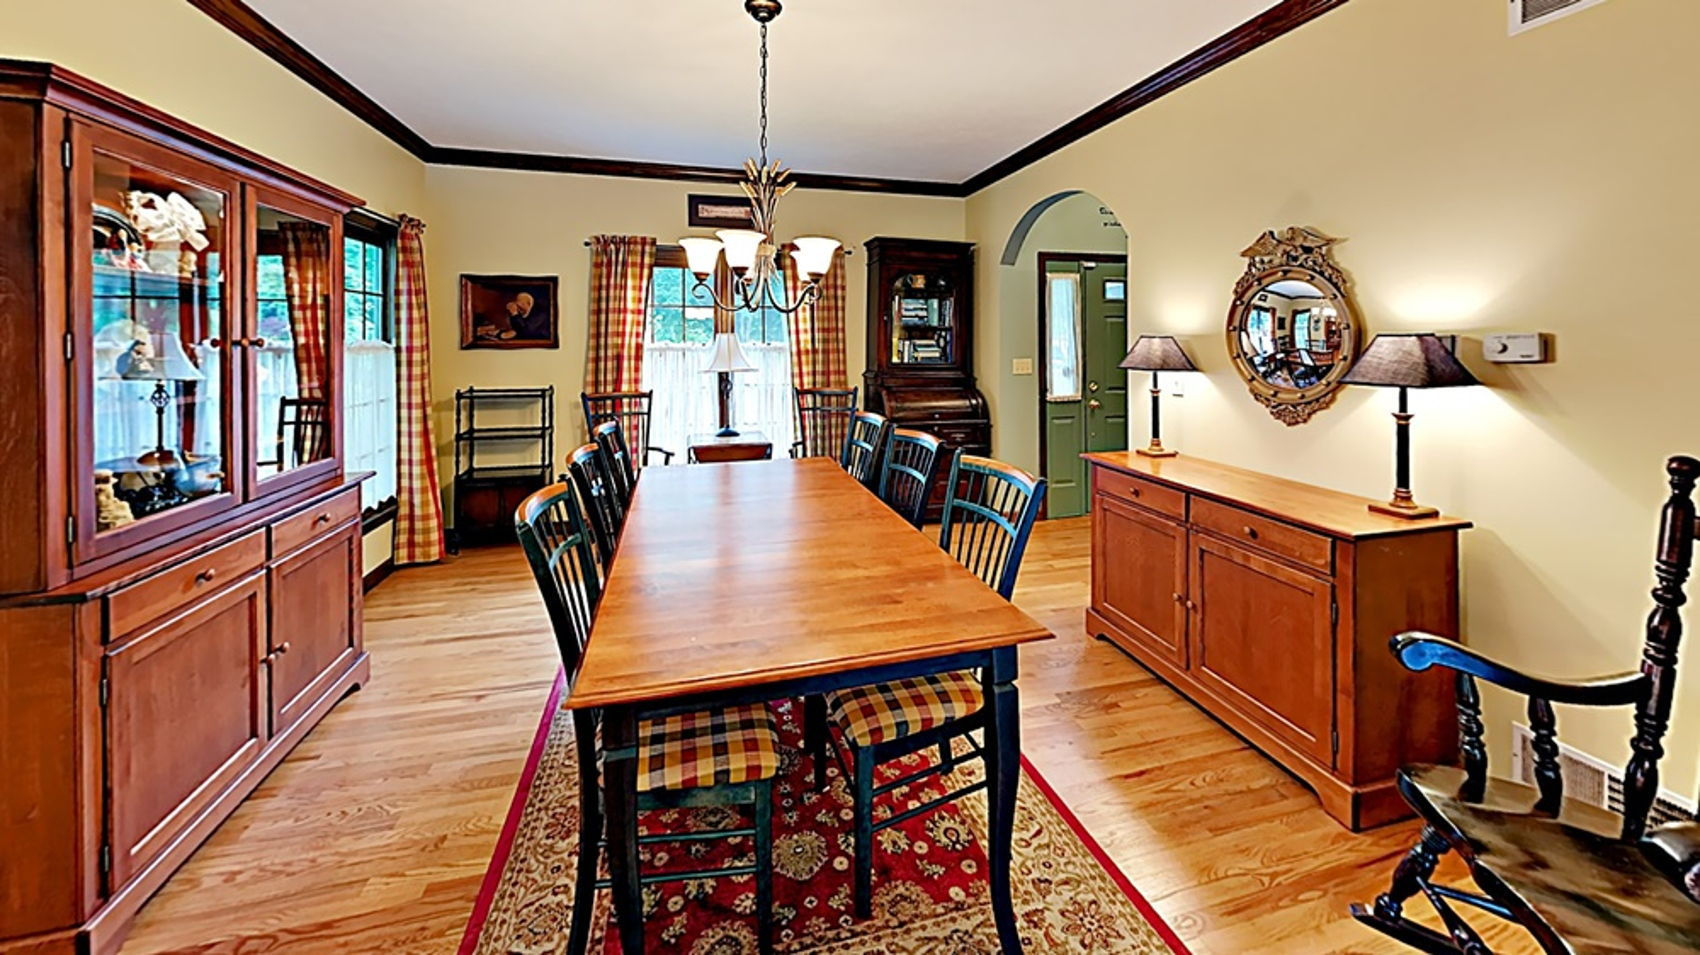 Dining room with hardwood